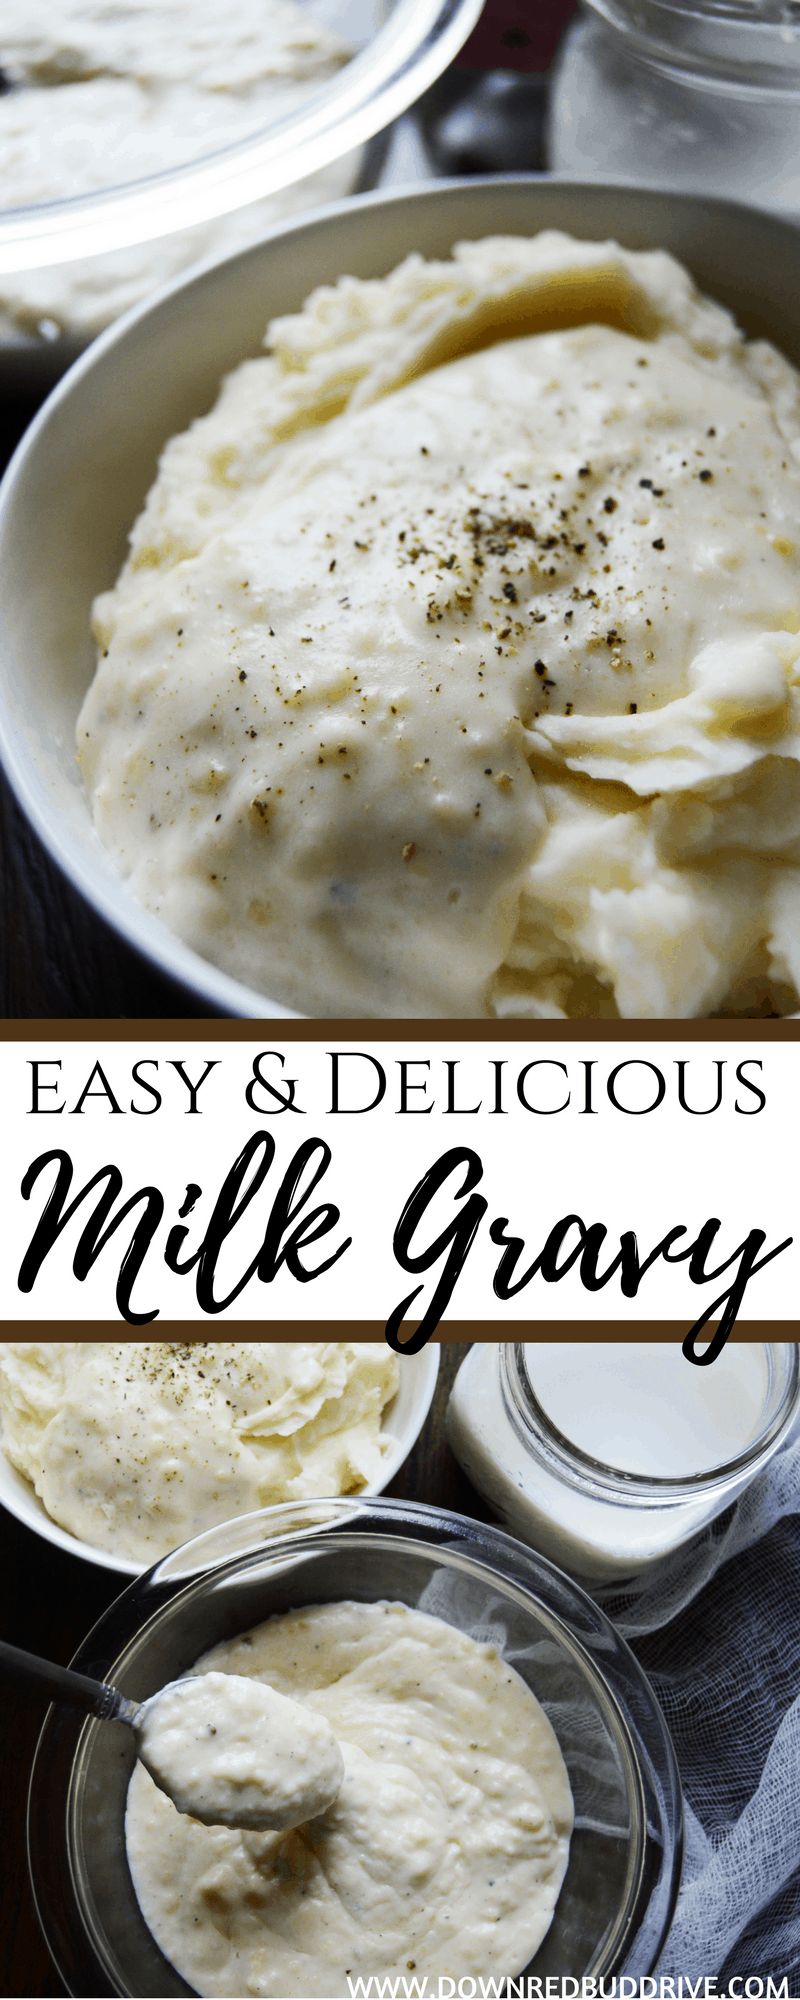 White Gravy Recipe | Easy & Delicious Milk Gravy Recipe